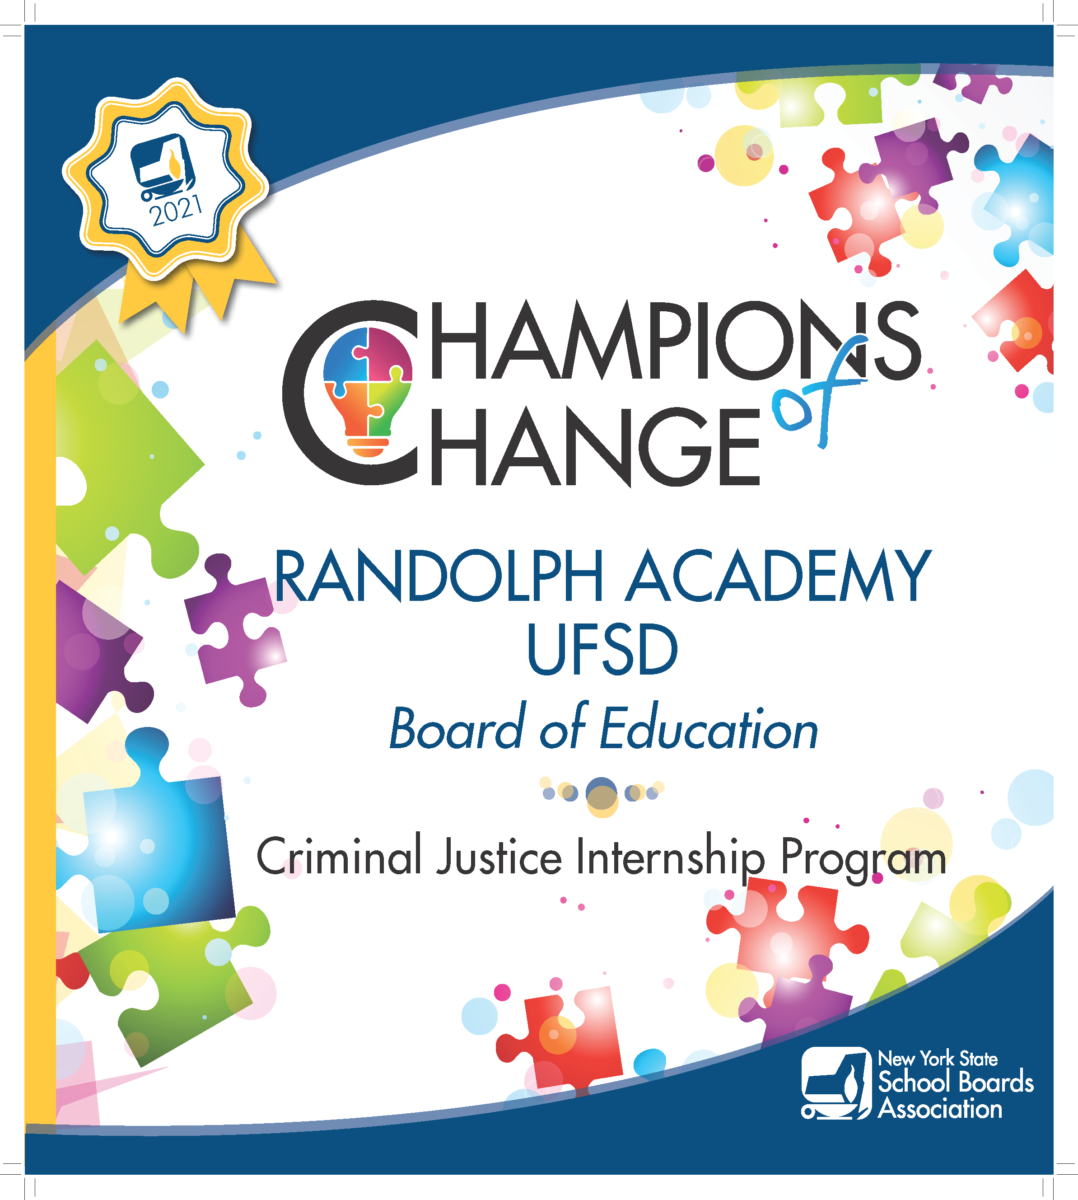 New York State School Boards Association honors Randolph Academy as 'Champion of Change'